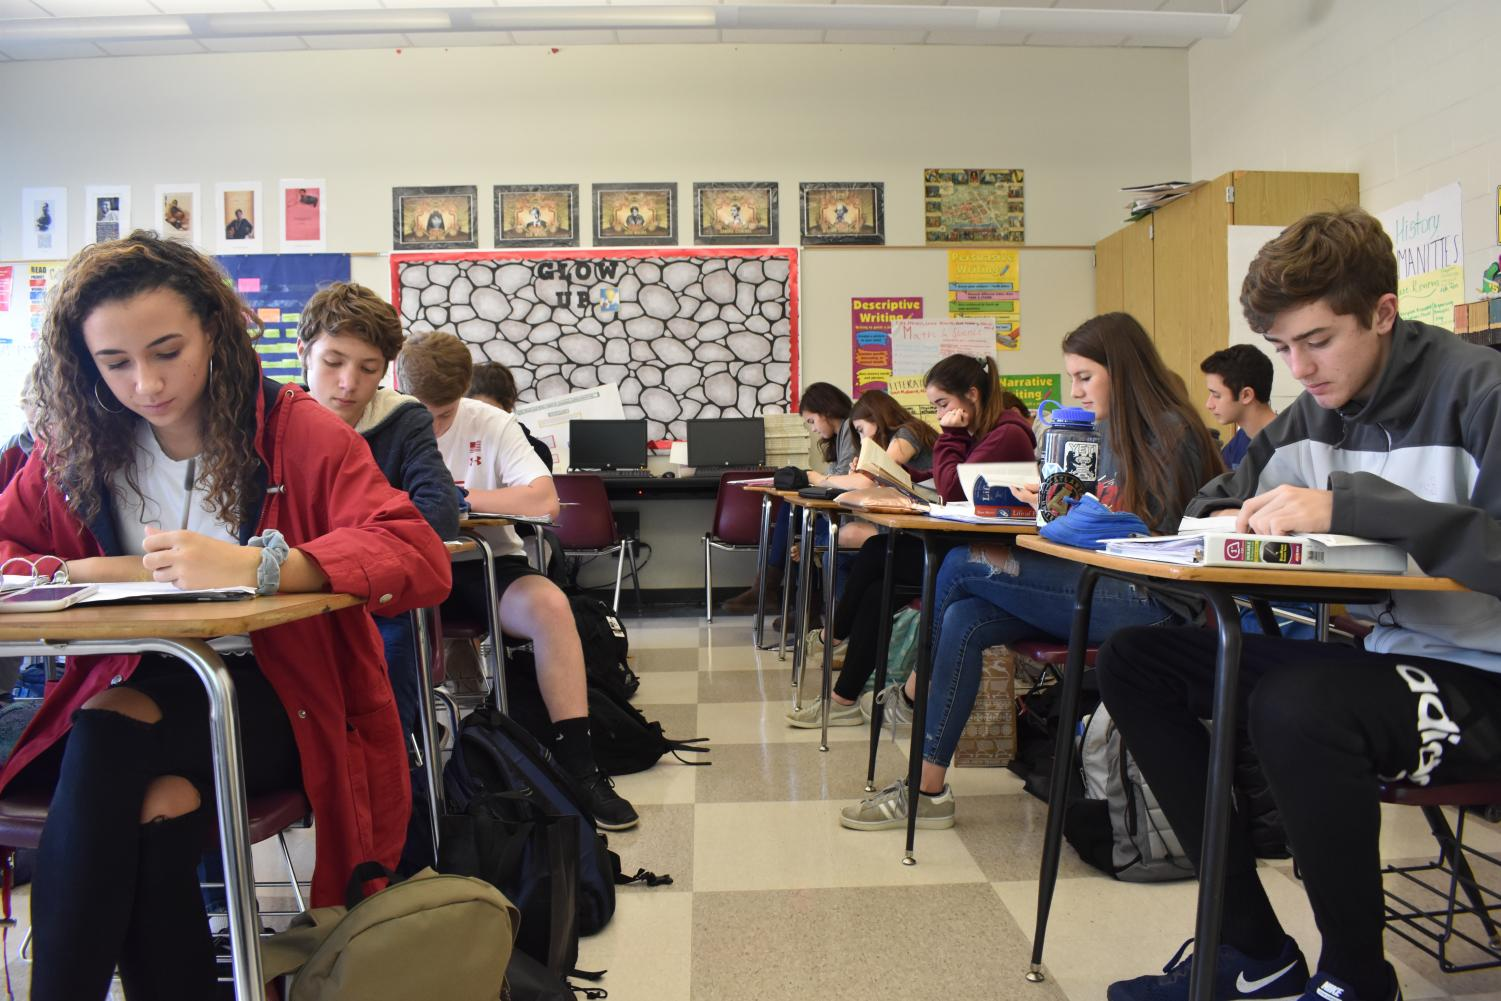 English teacher Carol Kelly's tenth grade literature class, a required Grady course, is filled with students at every desk, leaving no room for new students.